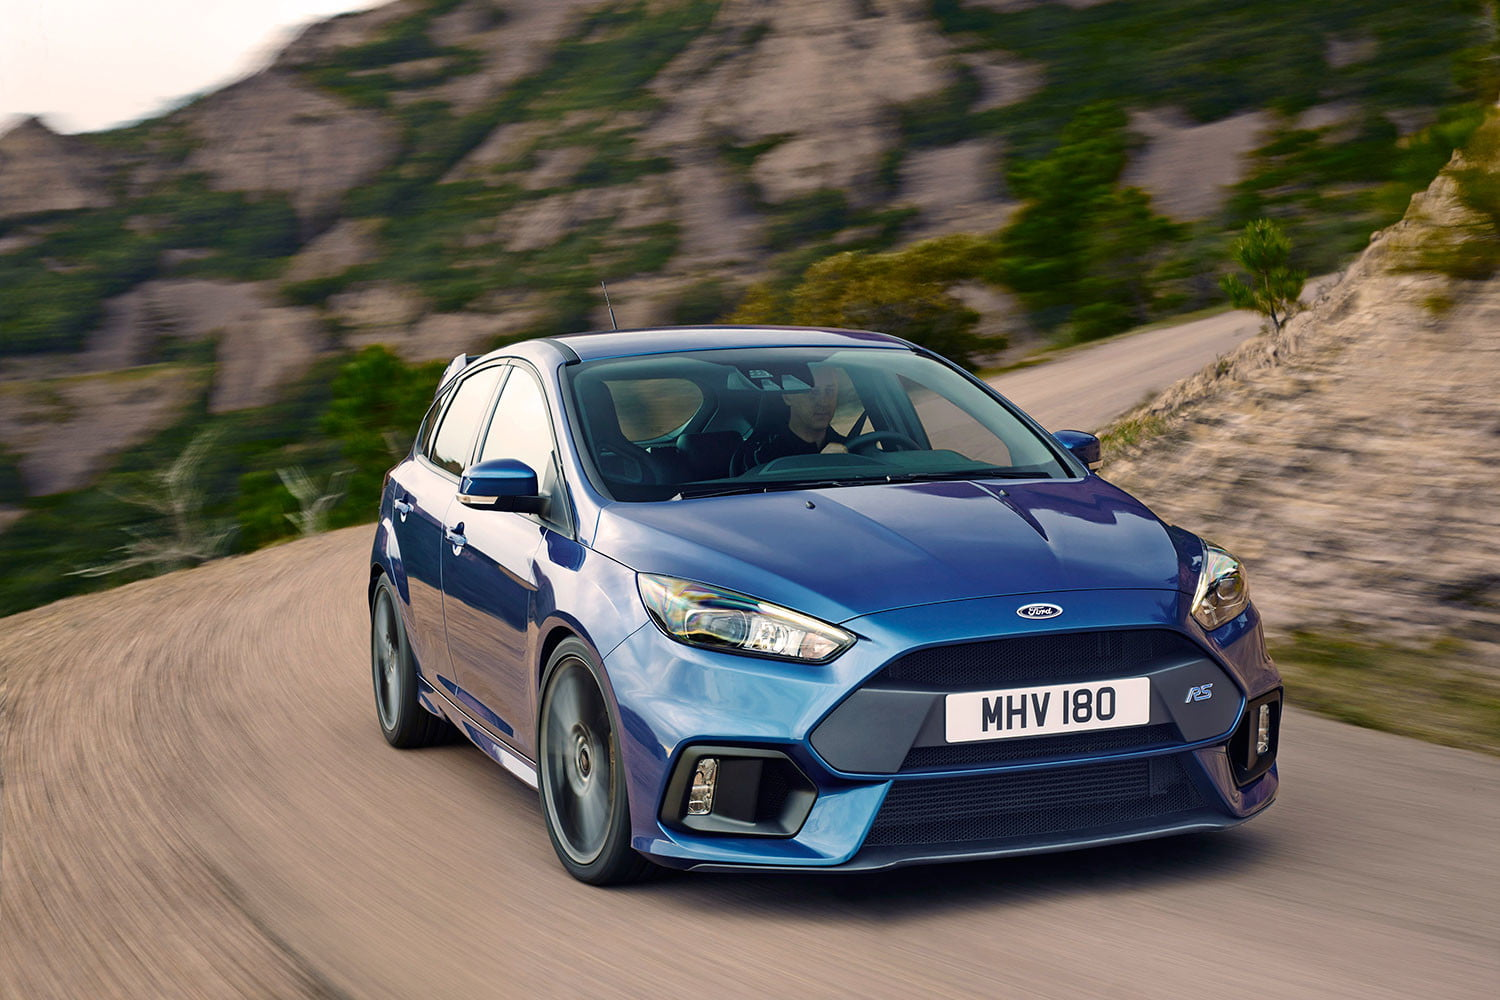 horsepower along packs into the ride ford autoblog rs price hennessey focus